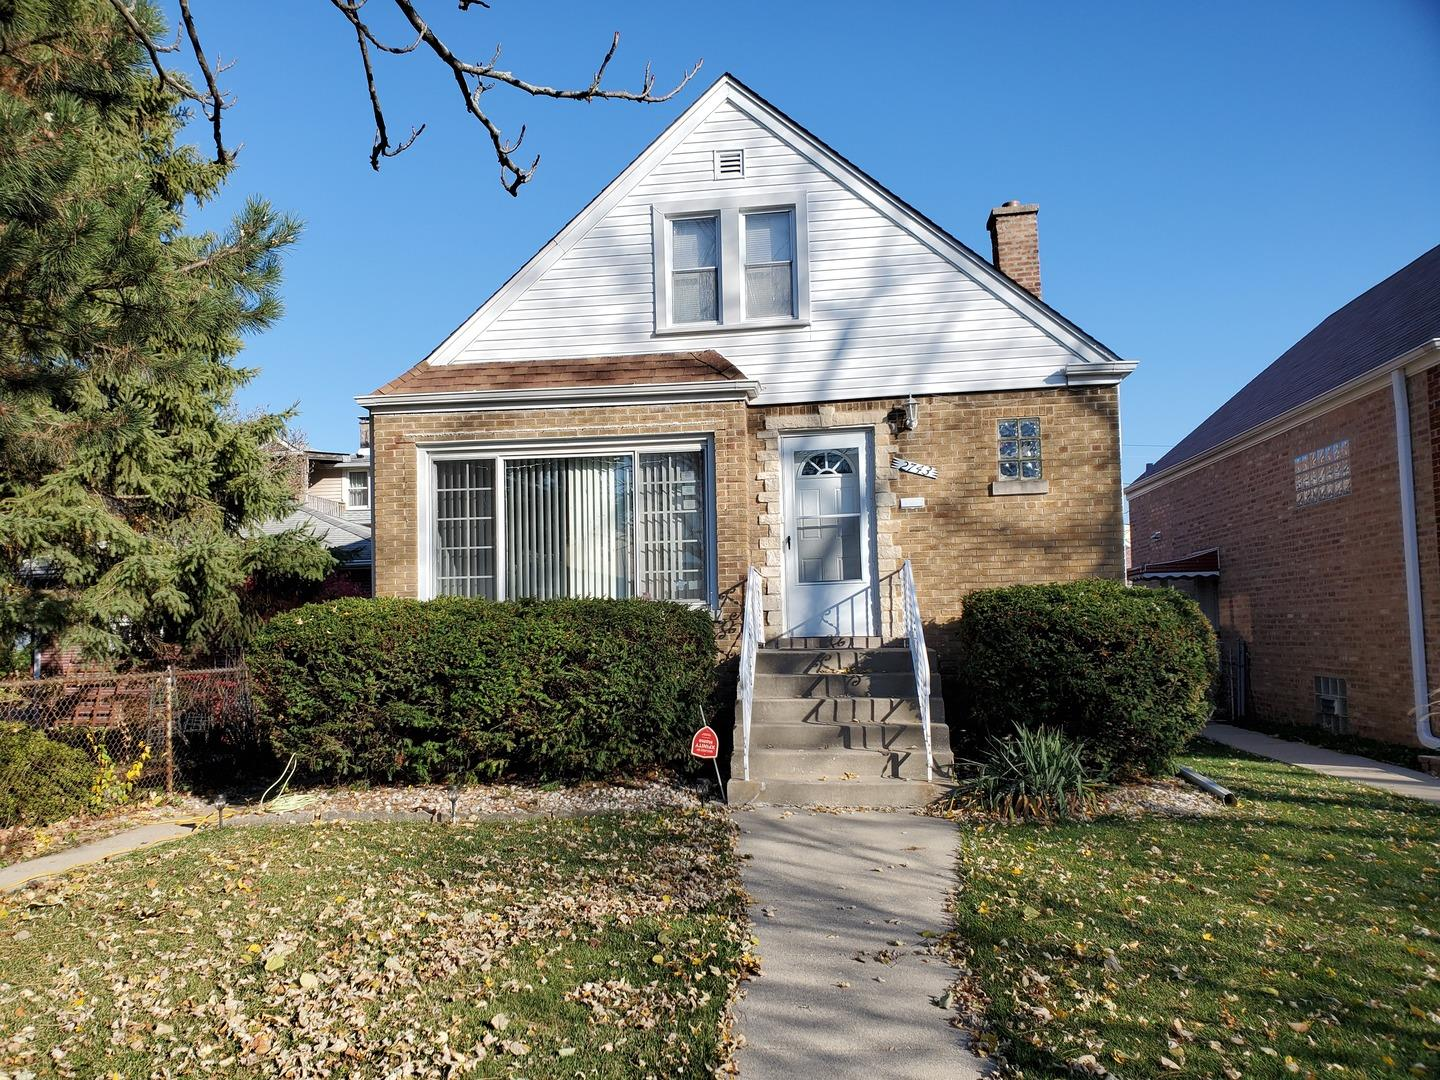 2743 N 73rd Court, Elmwood Park, IL 60707 - #: 10999182